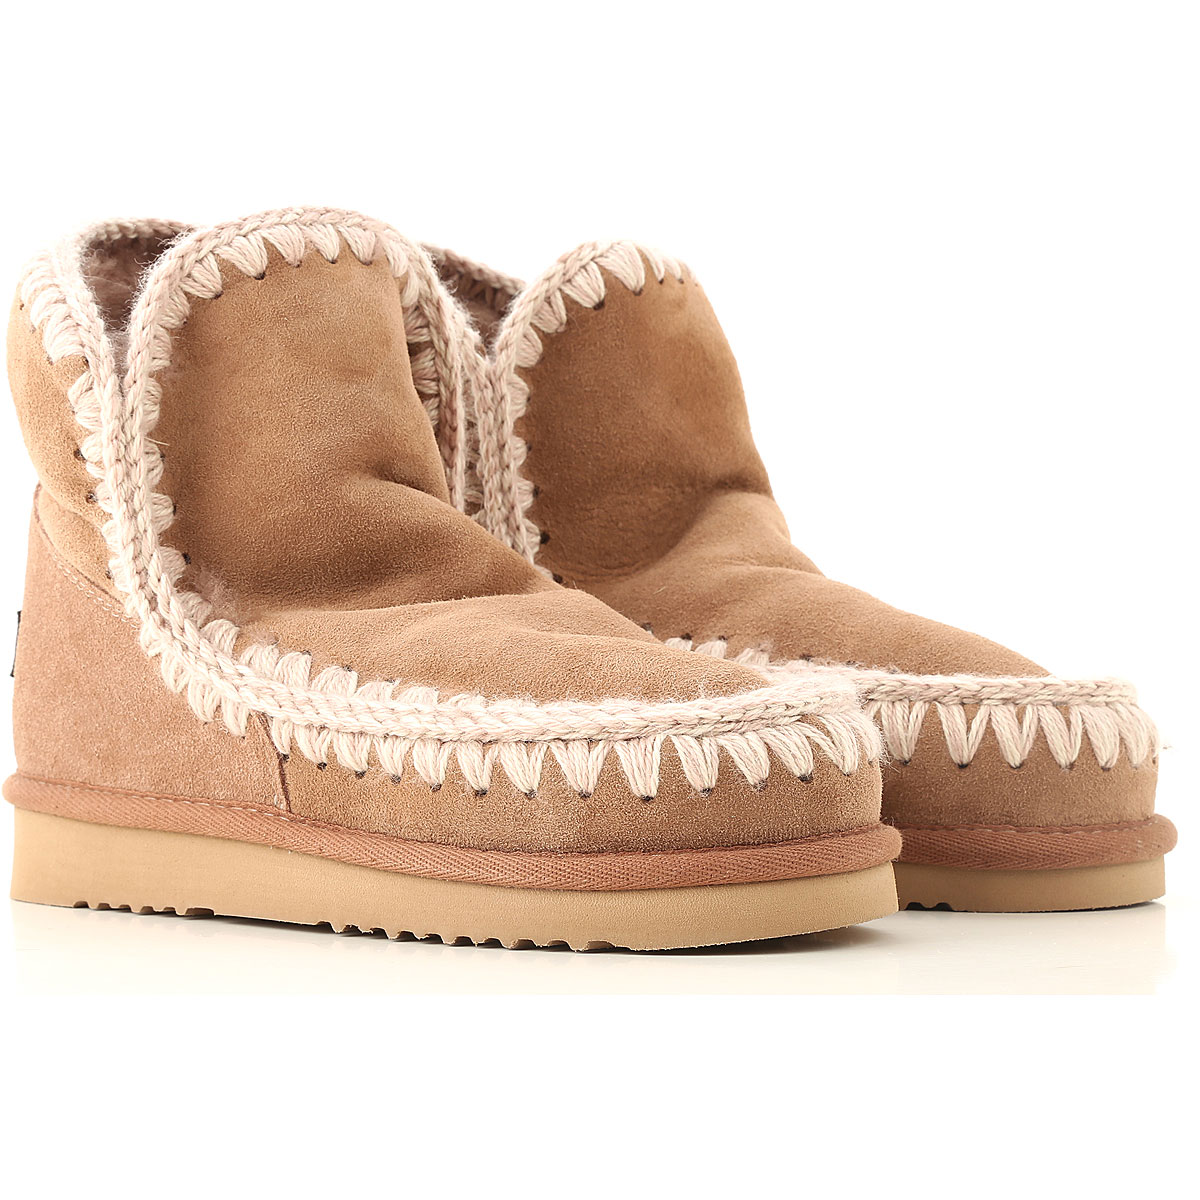 Mou Boots for Women, Booties On Sale in Outlet, Natural Mauve, sheepskin, 2019, EUR 38 - UK 5 - USA 7.5 EUR 40 - UK 7 - USA 9.5